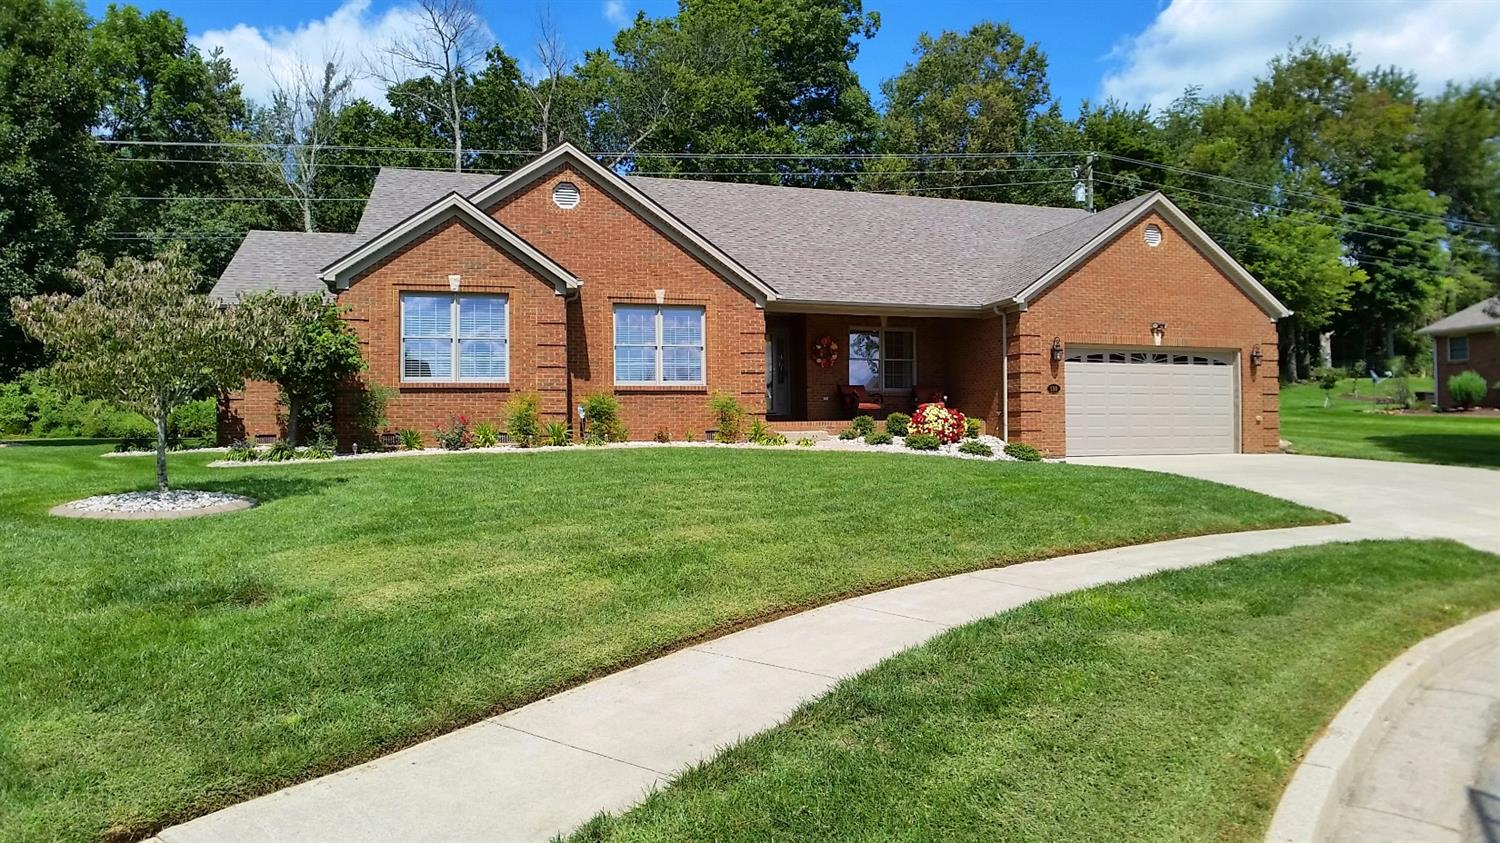 Home For Sale at 138 Legacy, Berea, KY 40403